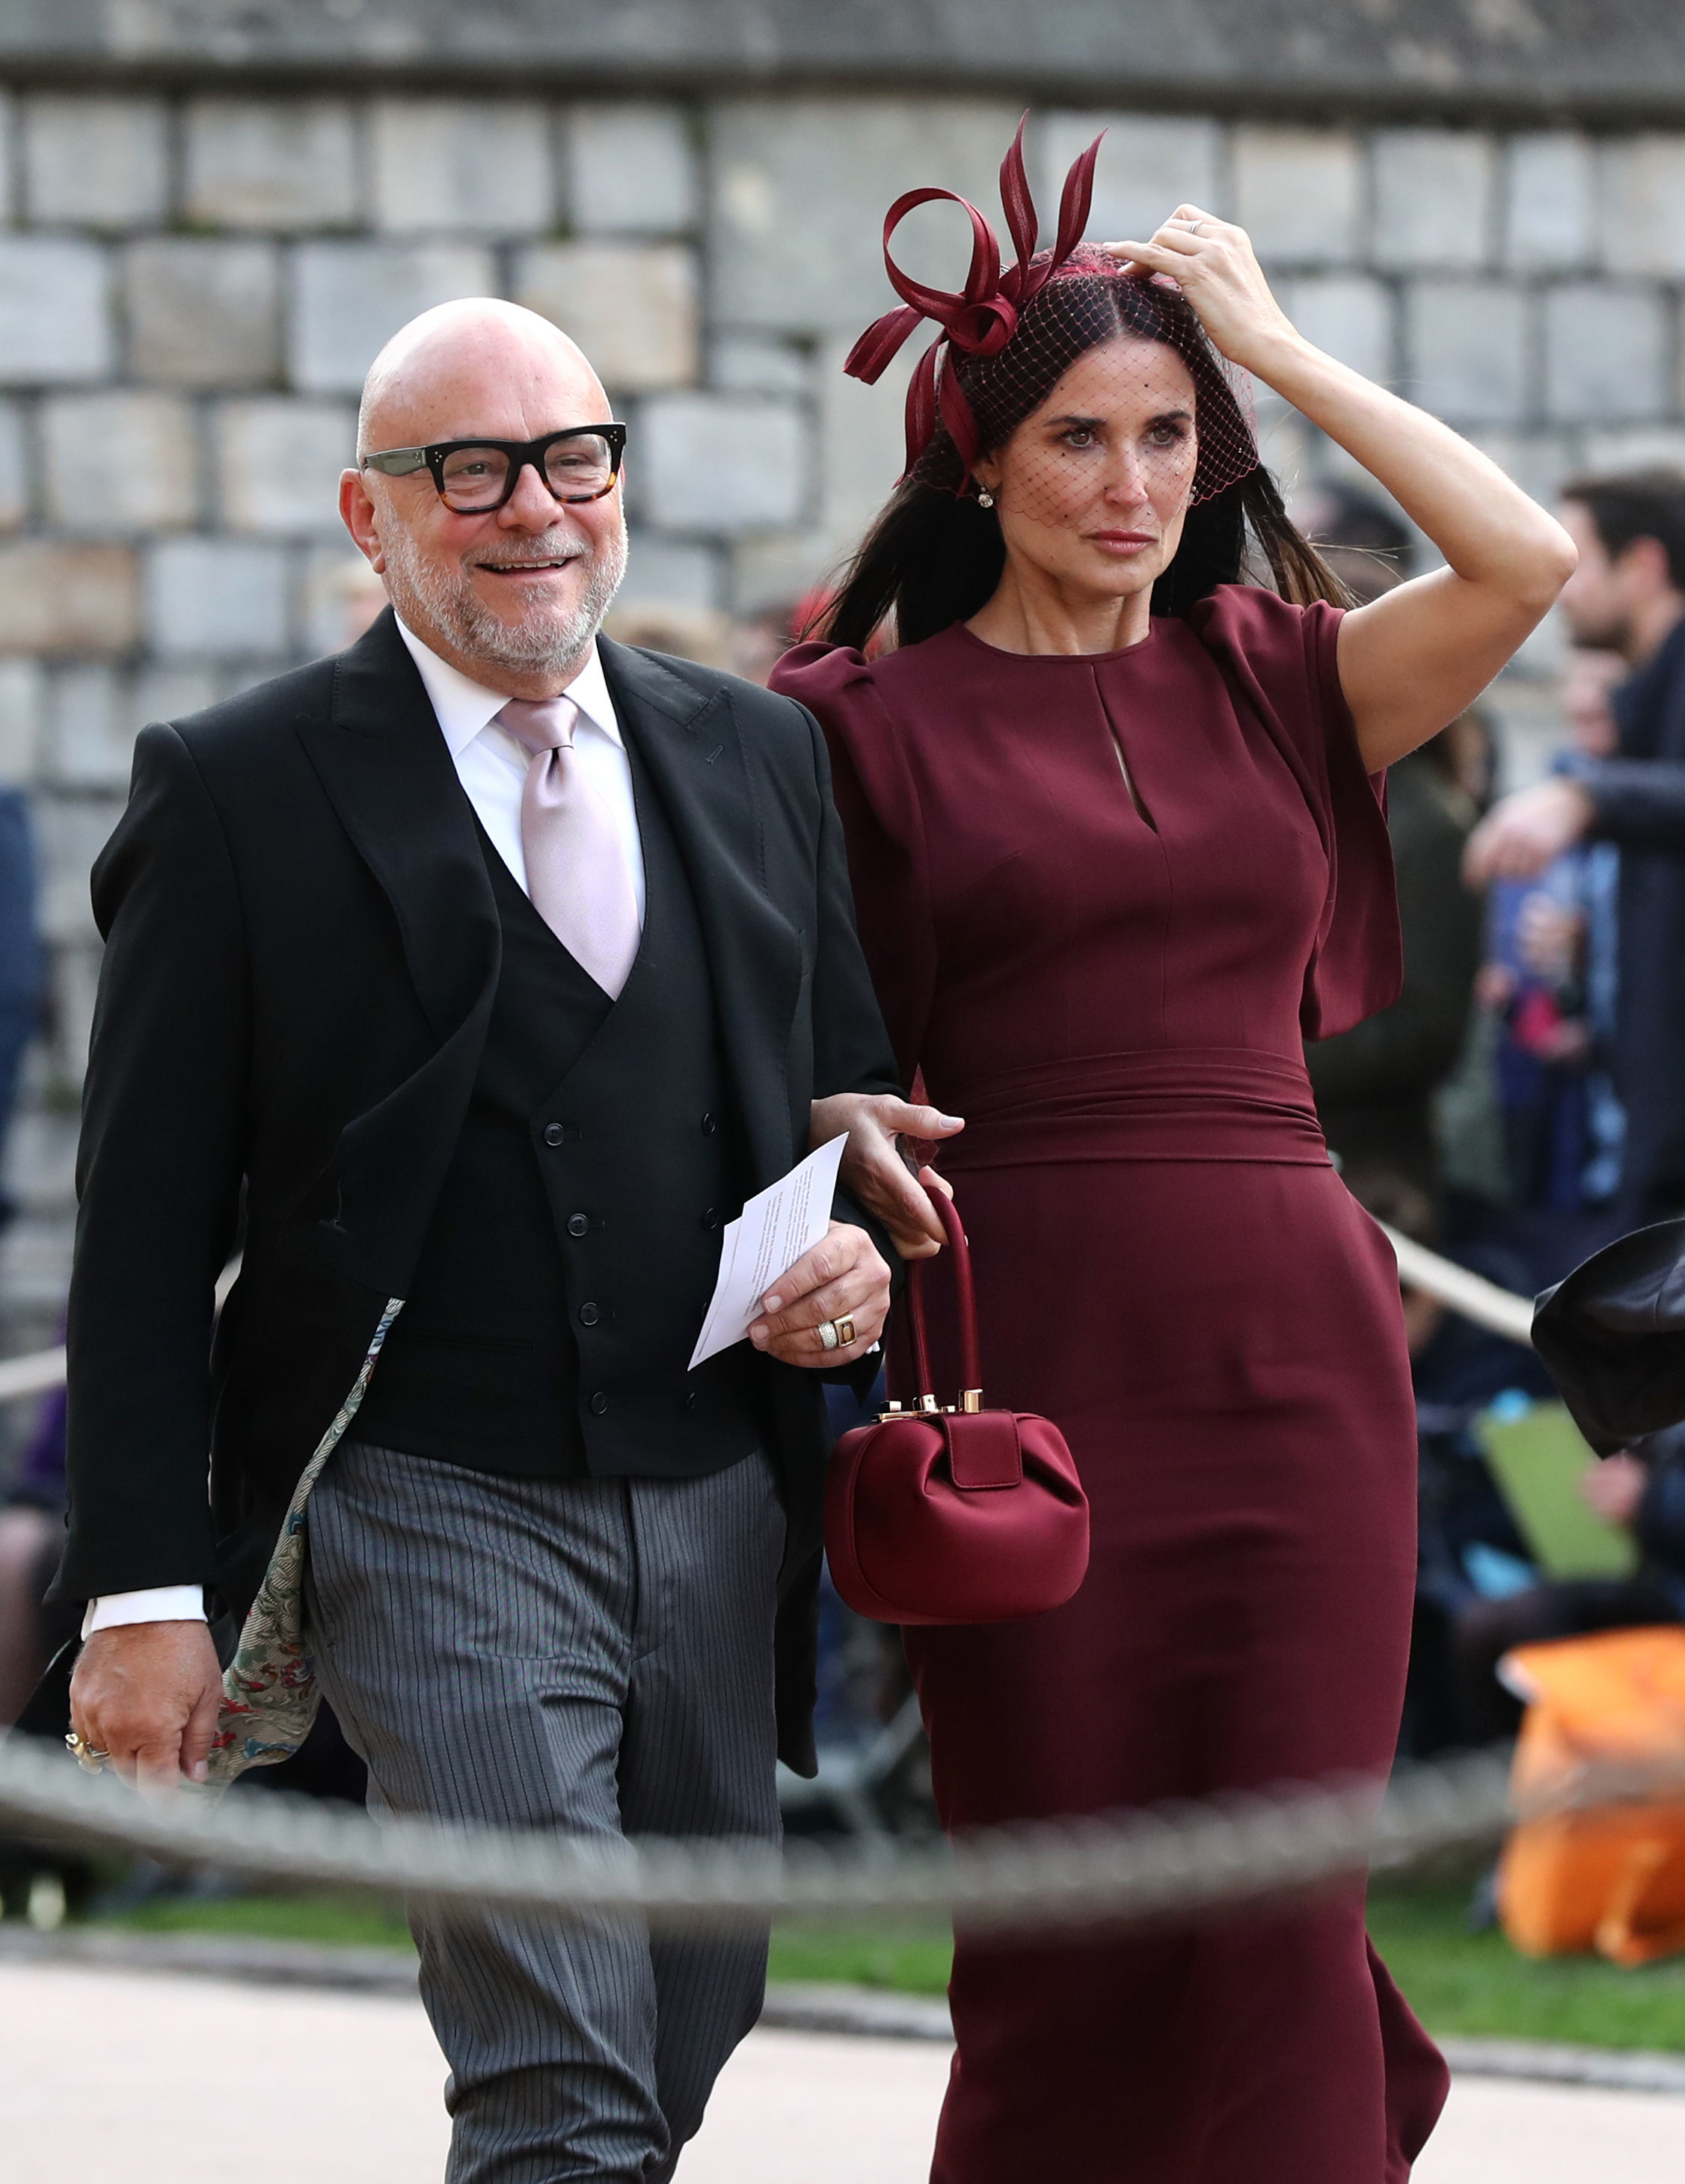 eric buterbaugh and demi moore arrive at the royal wedding of princess eugenie